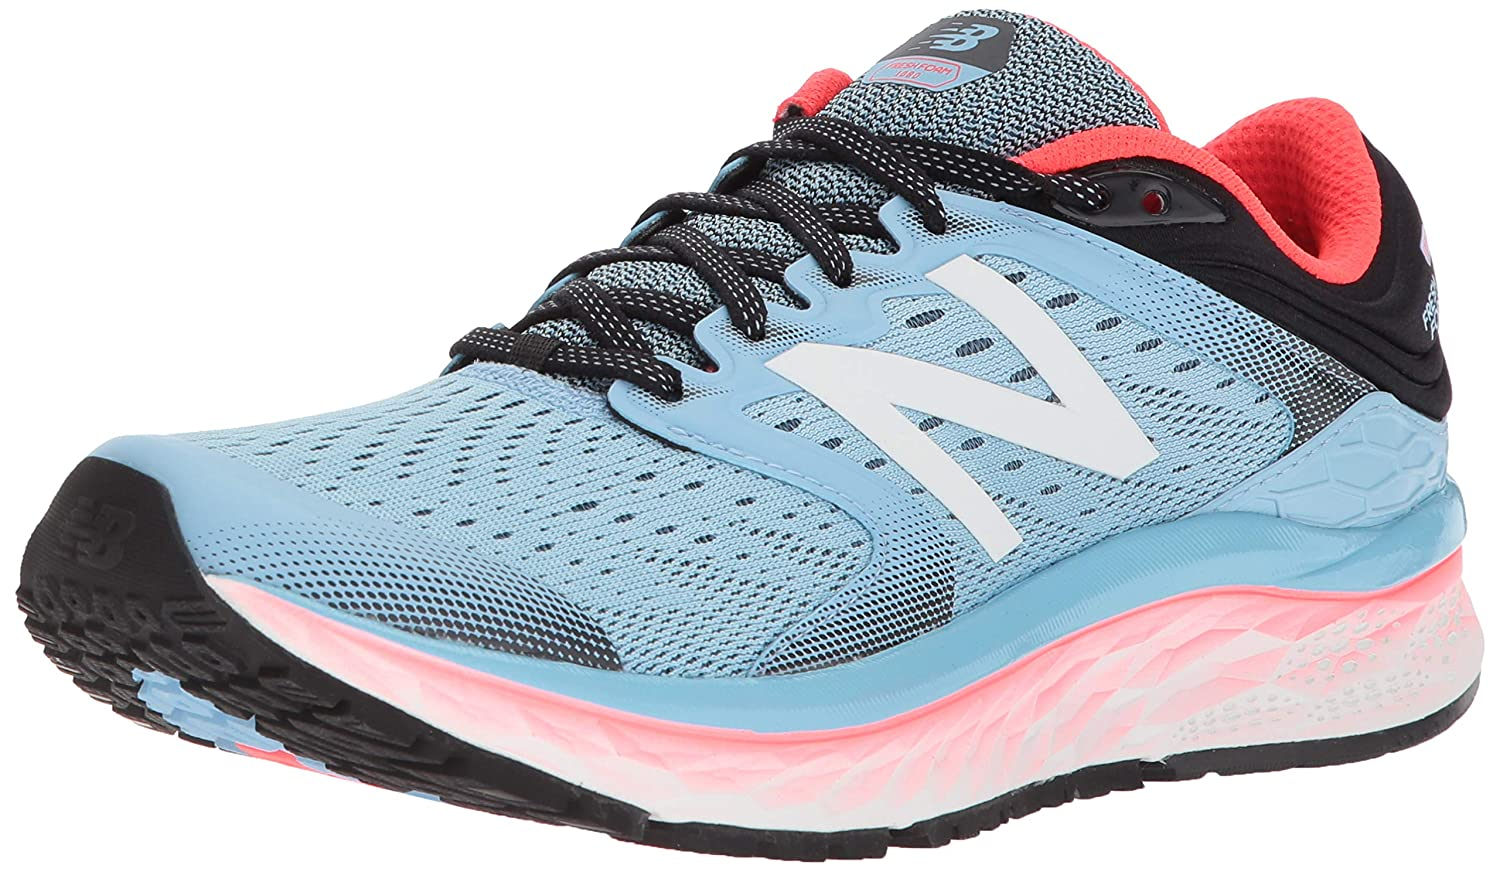 New Balance Women's 1080v8 Fresh Foam Running Shoe, Light Blue, 10 2E US